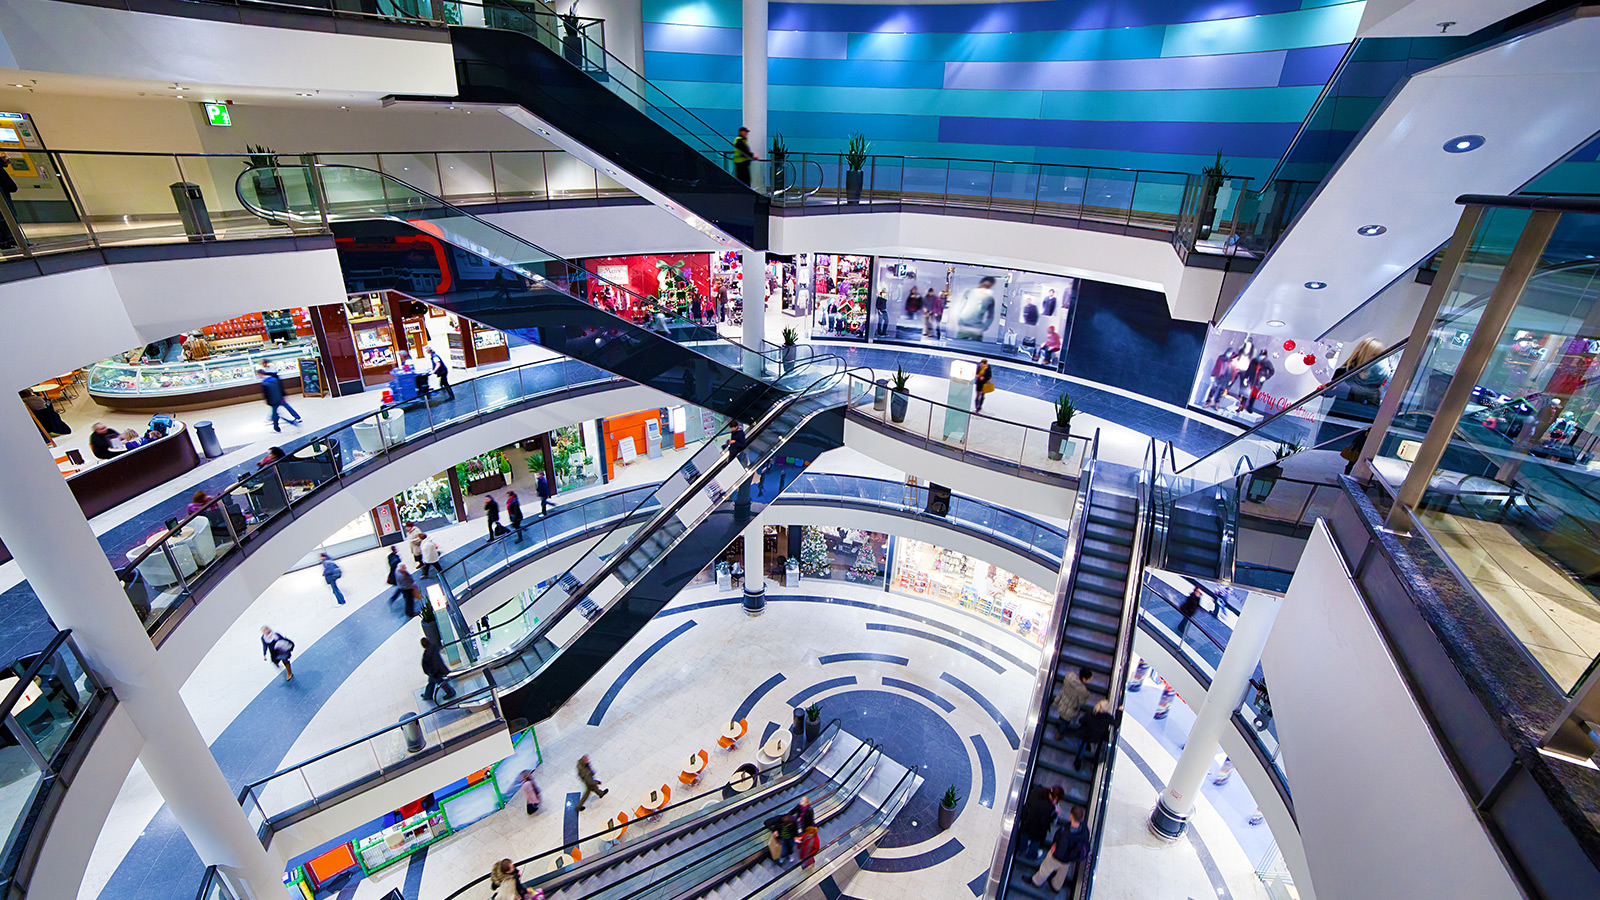 Key Findings of the NRF Organized Retail Crime Report 2020